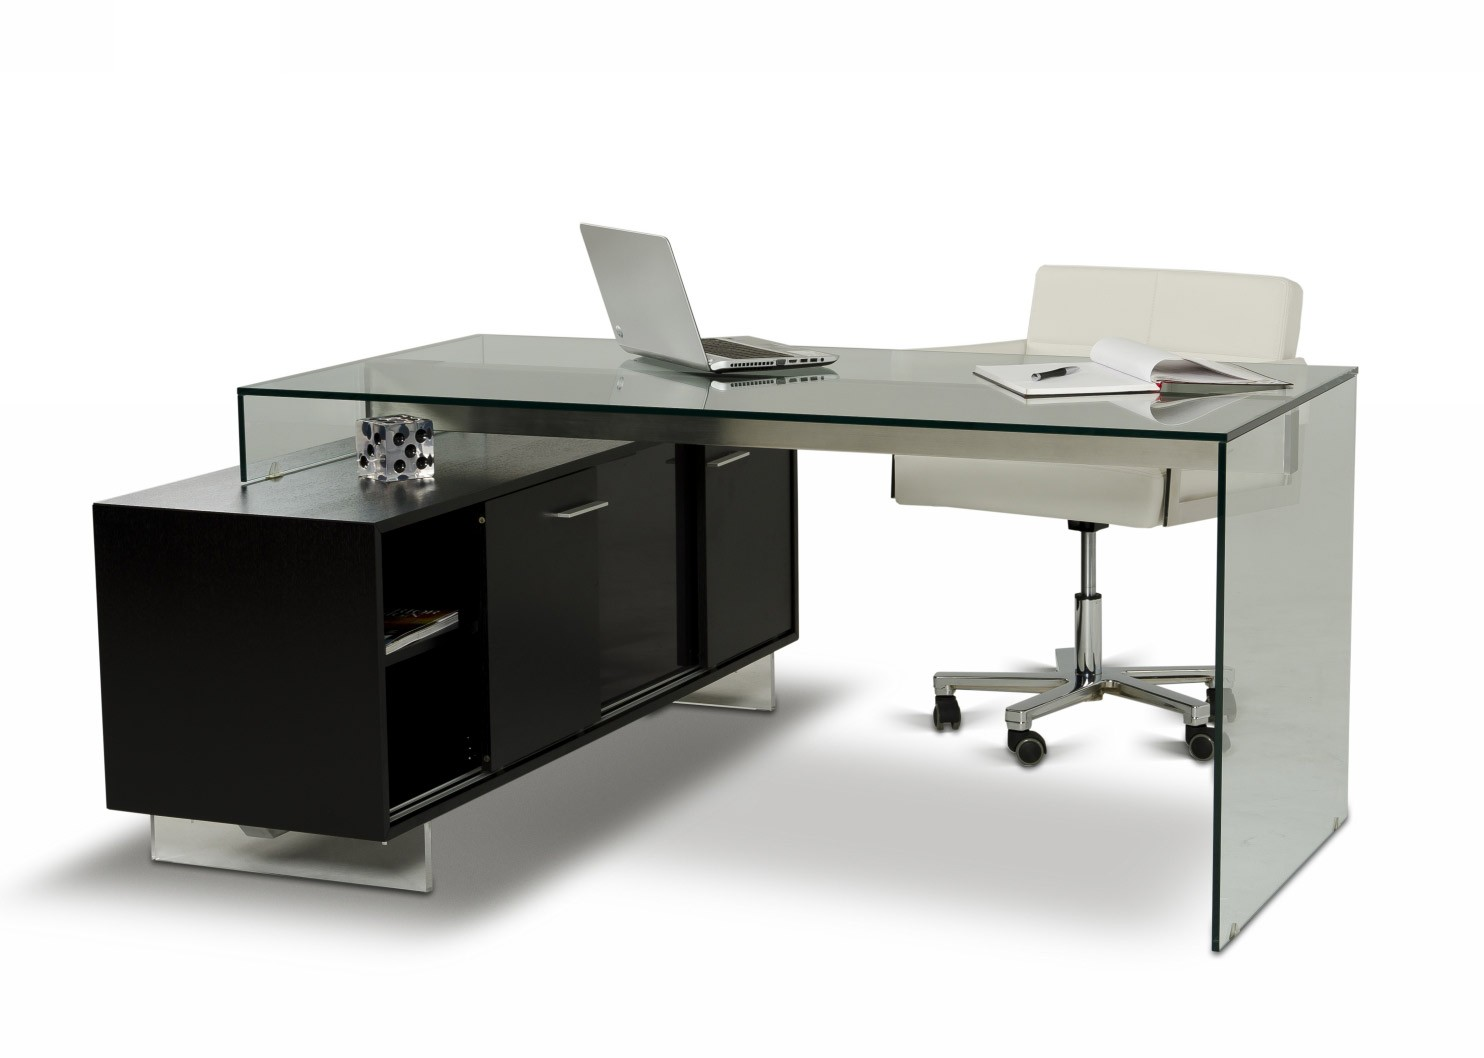 Modern Office Cabinet Design a modern office desk for your home office - la furniture blog